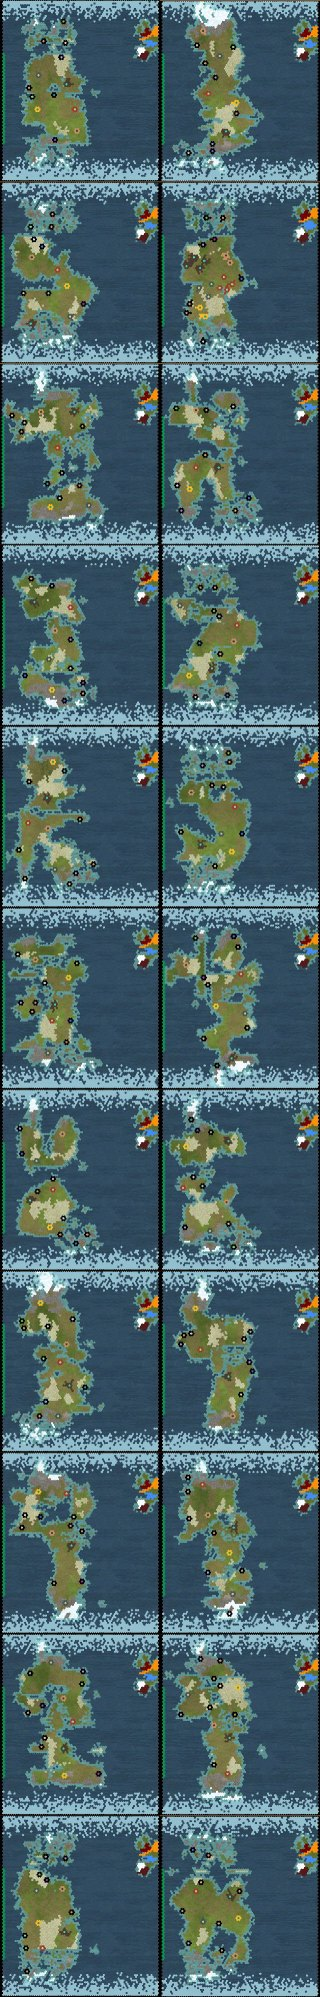 Conquest of the New World League of Extraordinary Hoyanehs Steam Achievement - Failed Maps